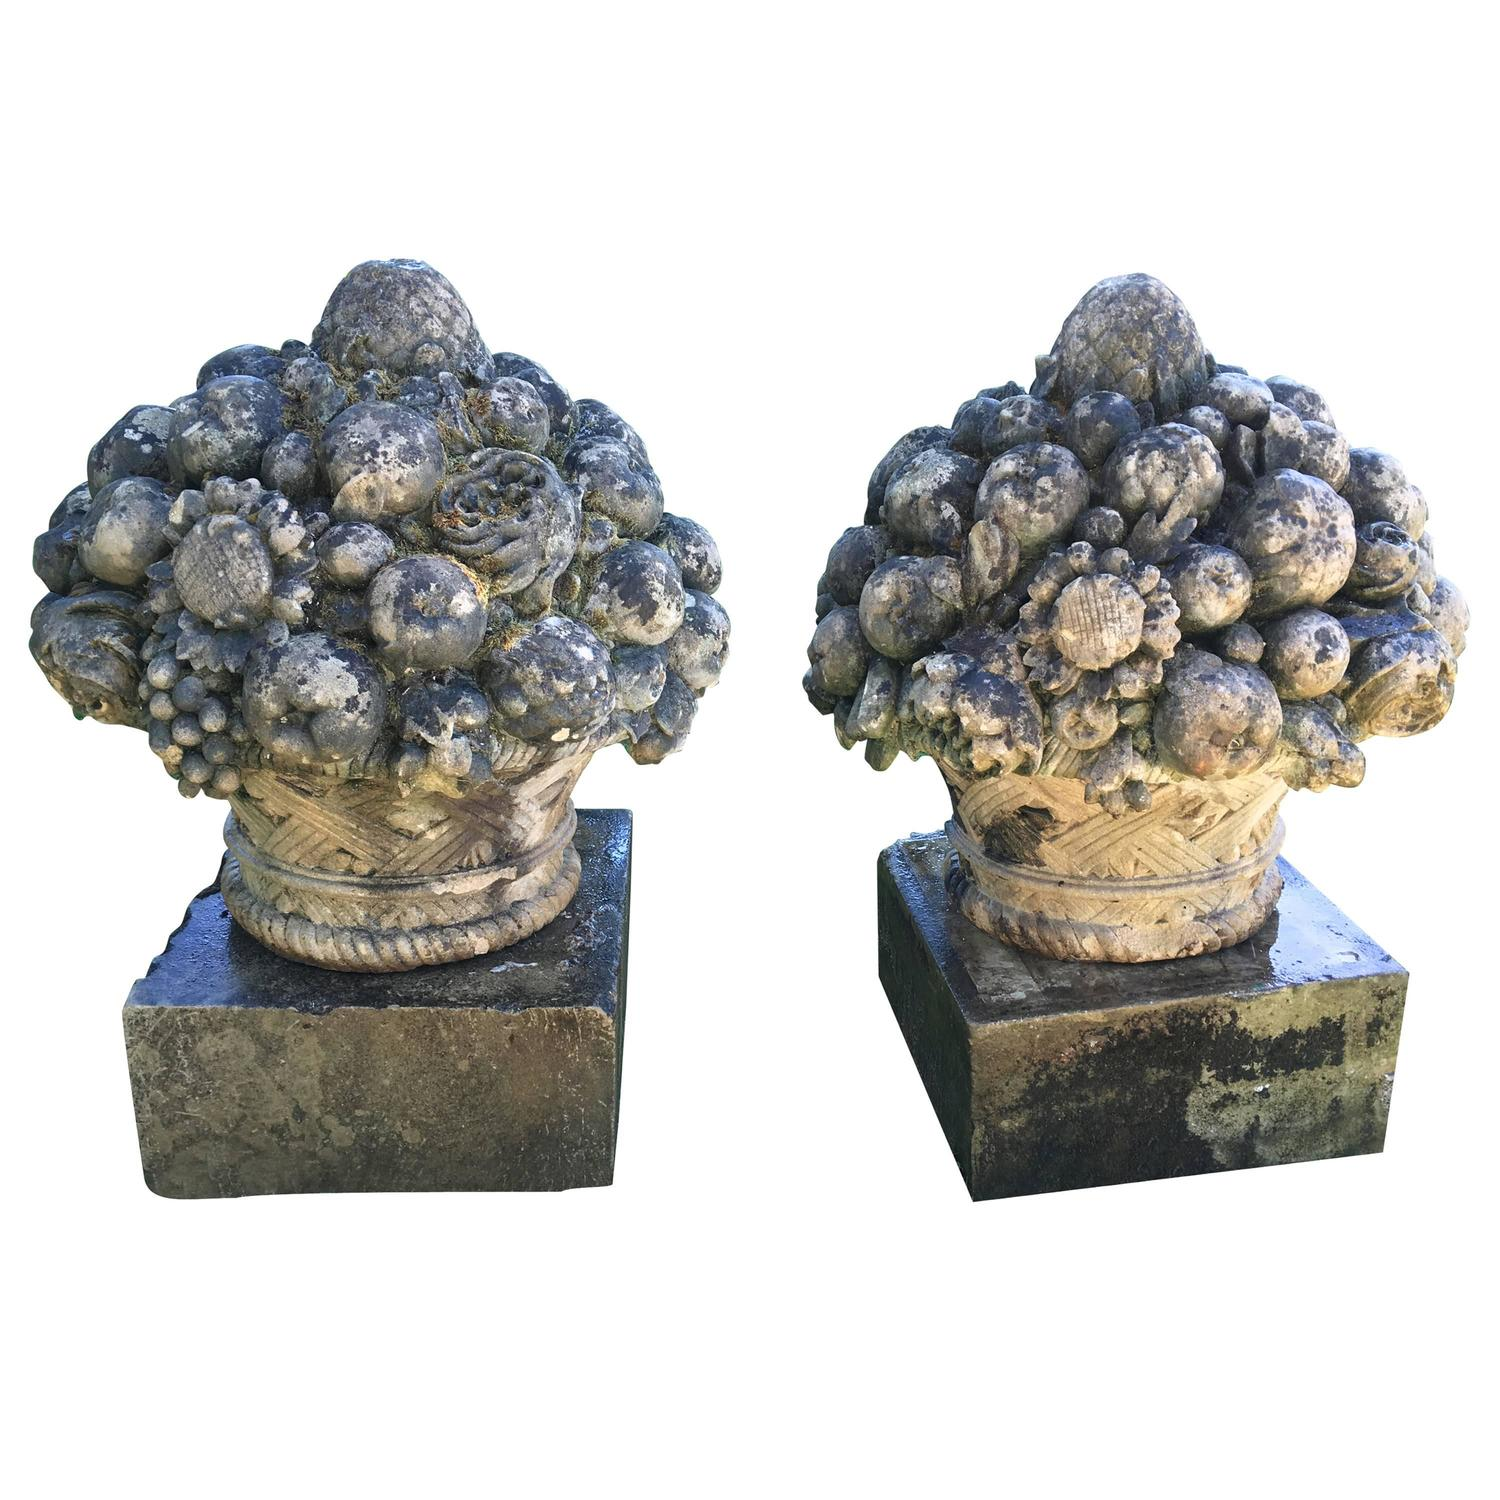 Magnificent pair of chateau sized carved stone fruit and